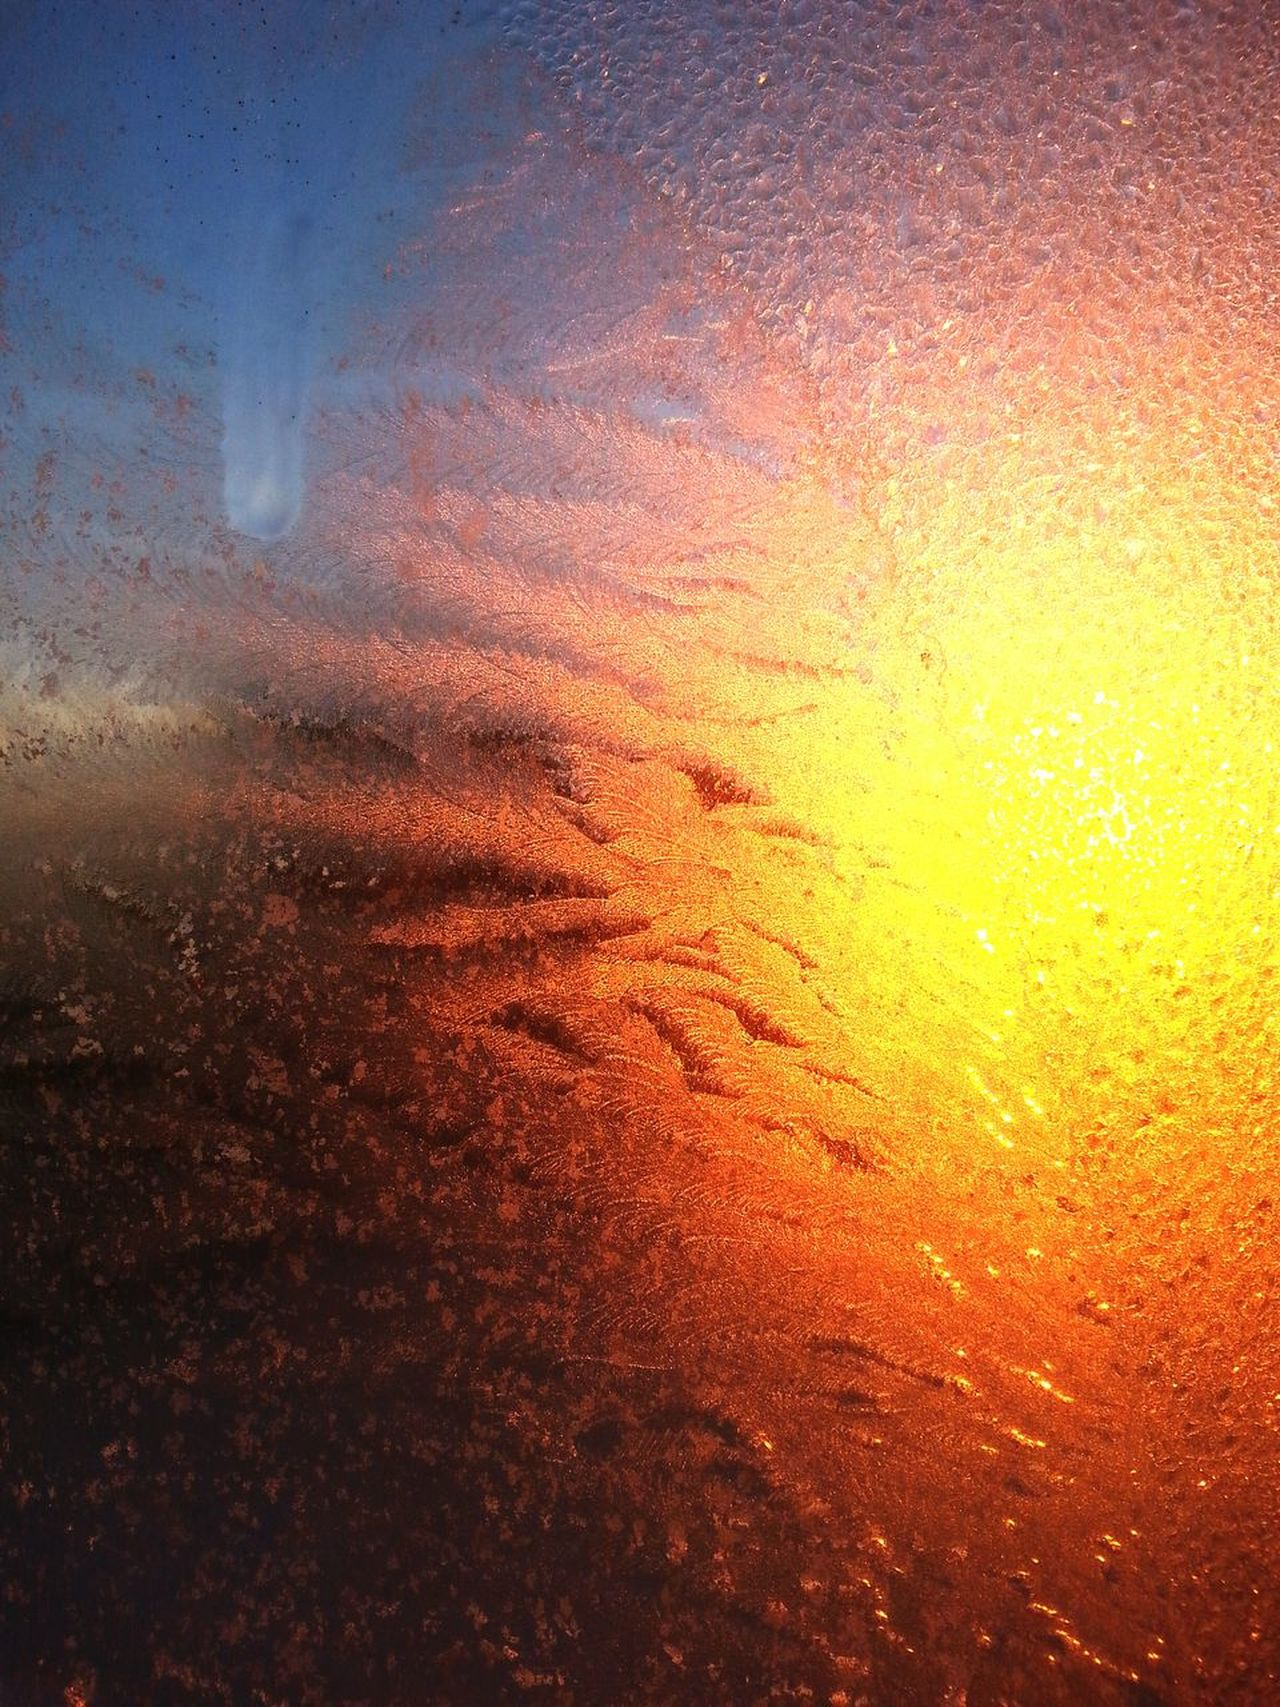 Sunset through an Icy Window .. Nature Is Beautiful